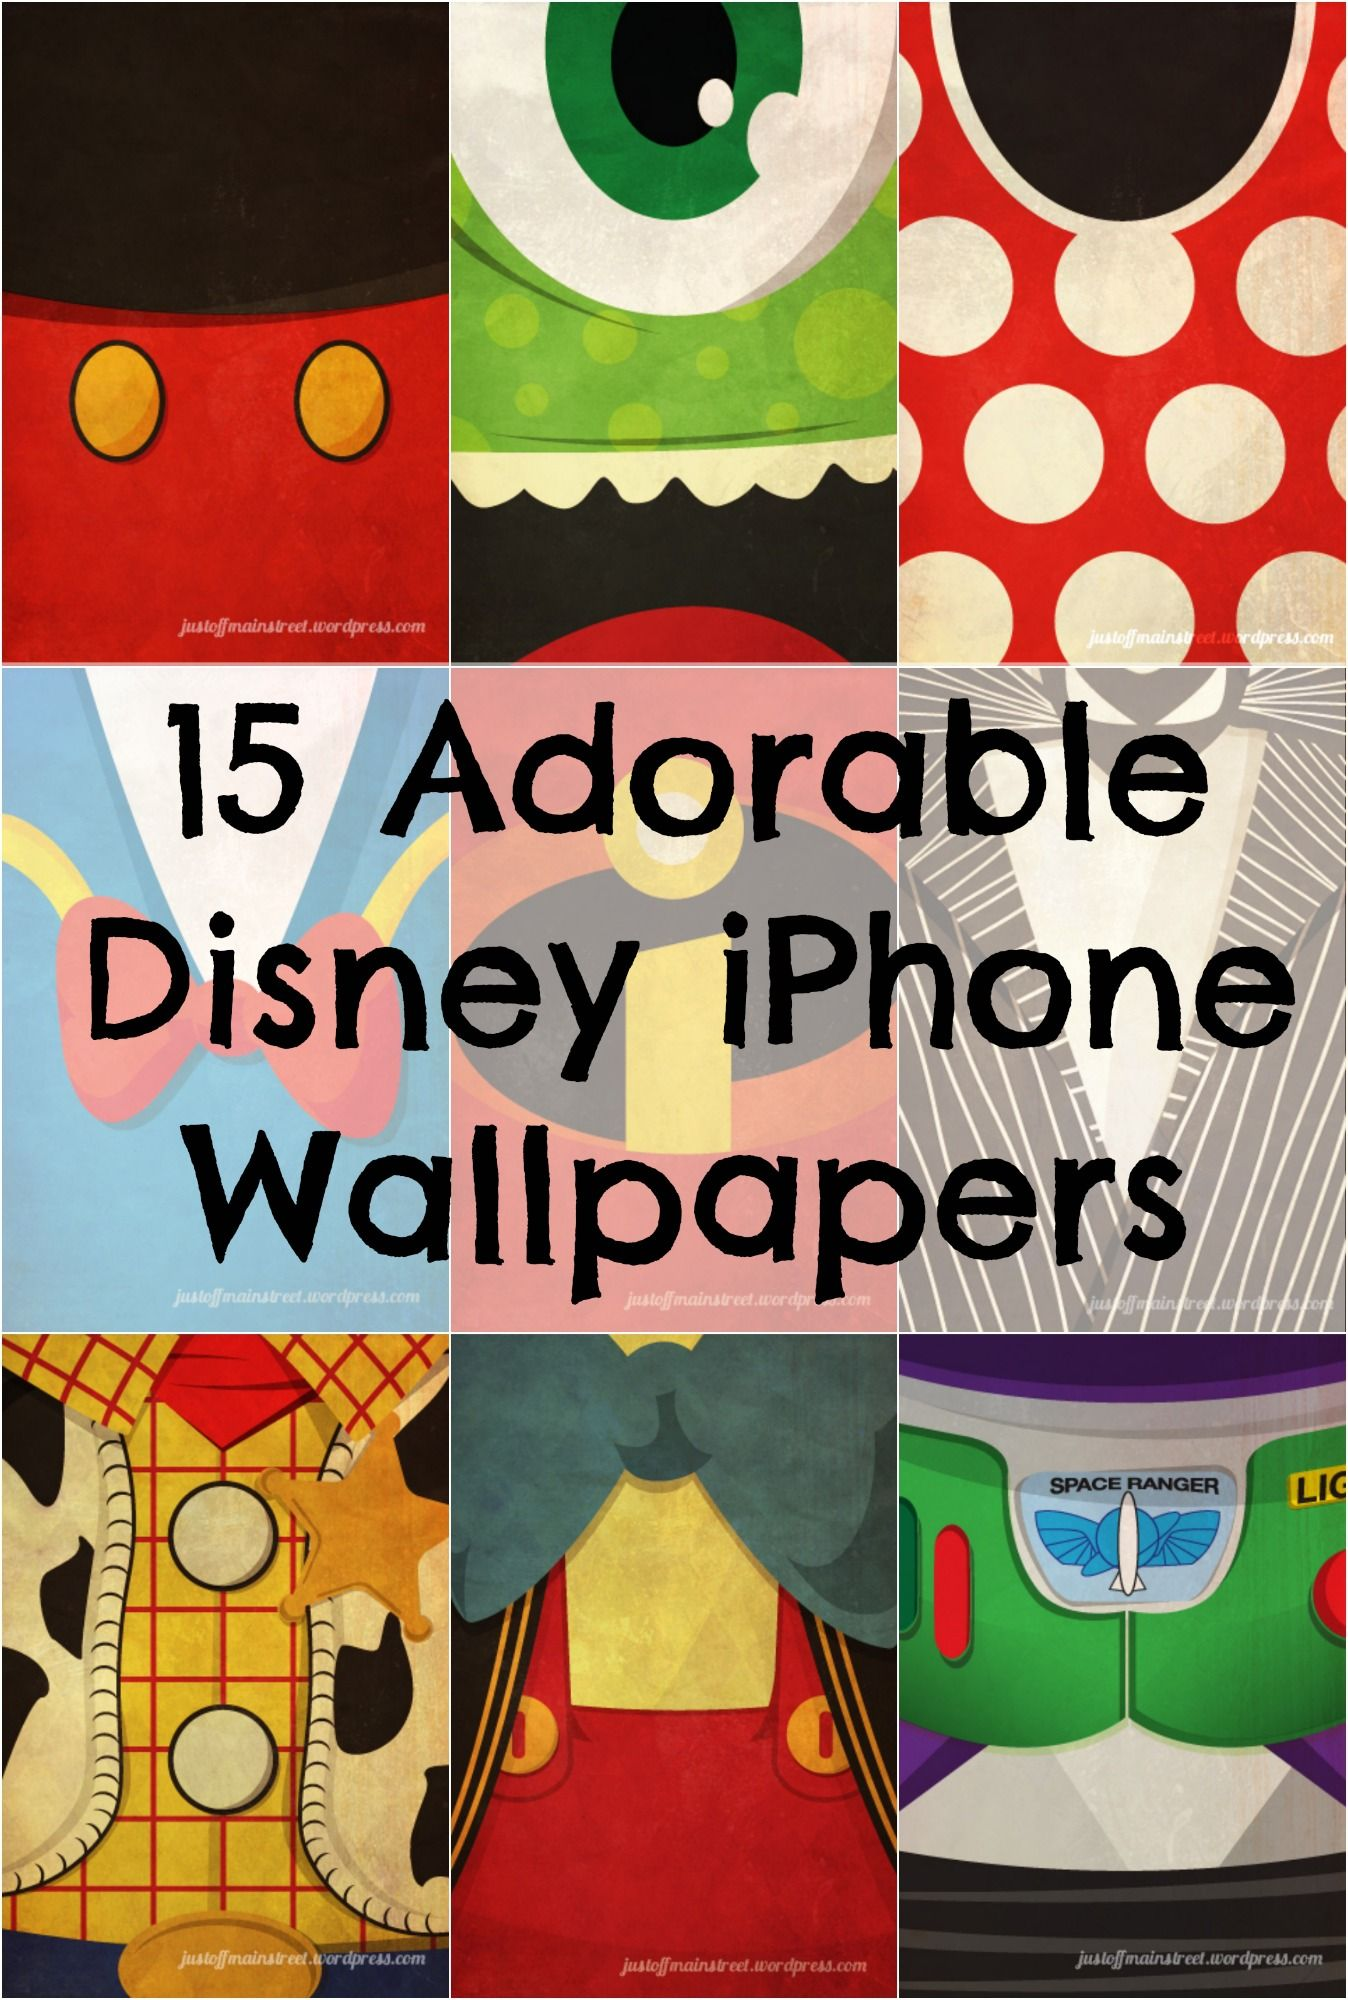 15 Iconic Disney Characters as iPhone Wallpapers Disney